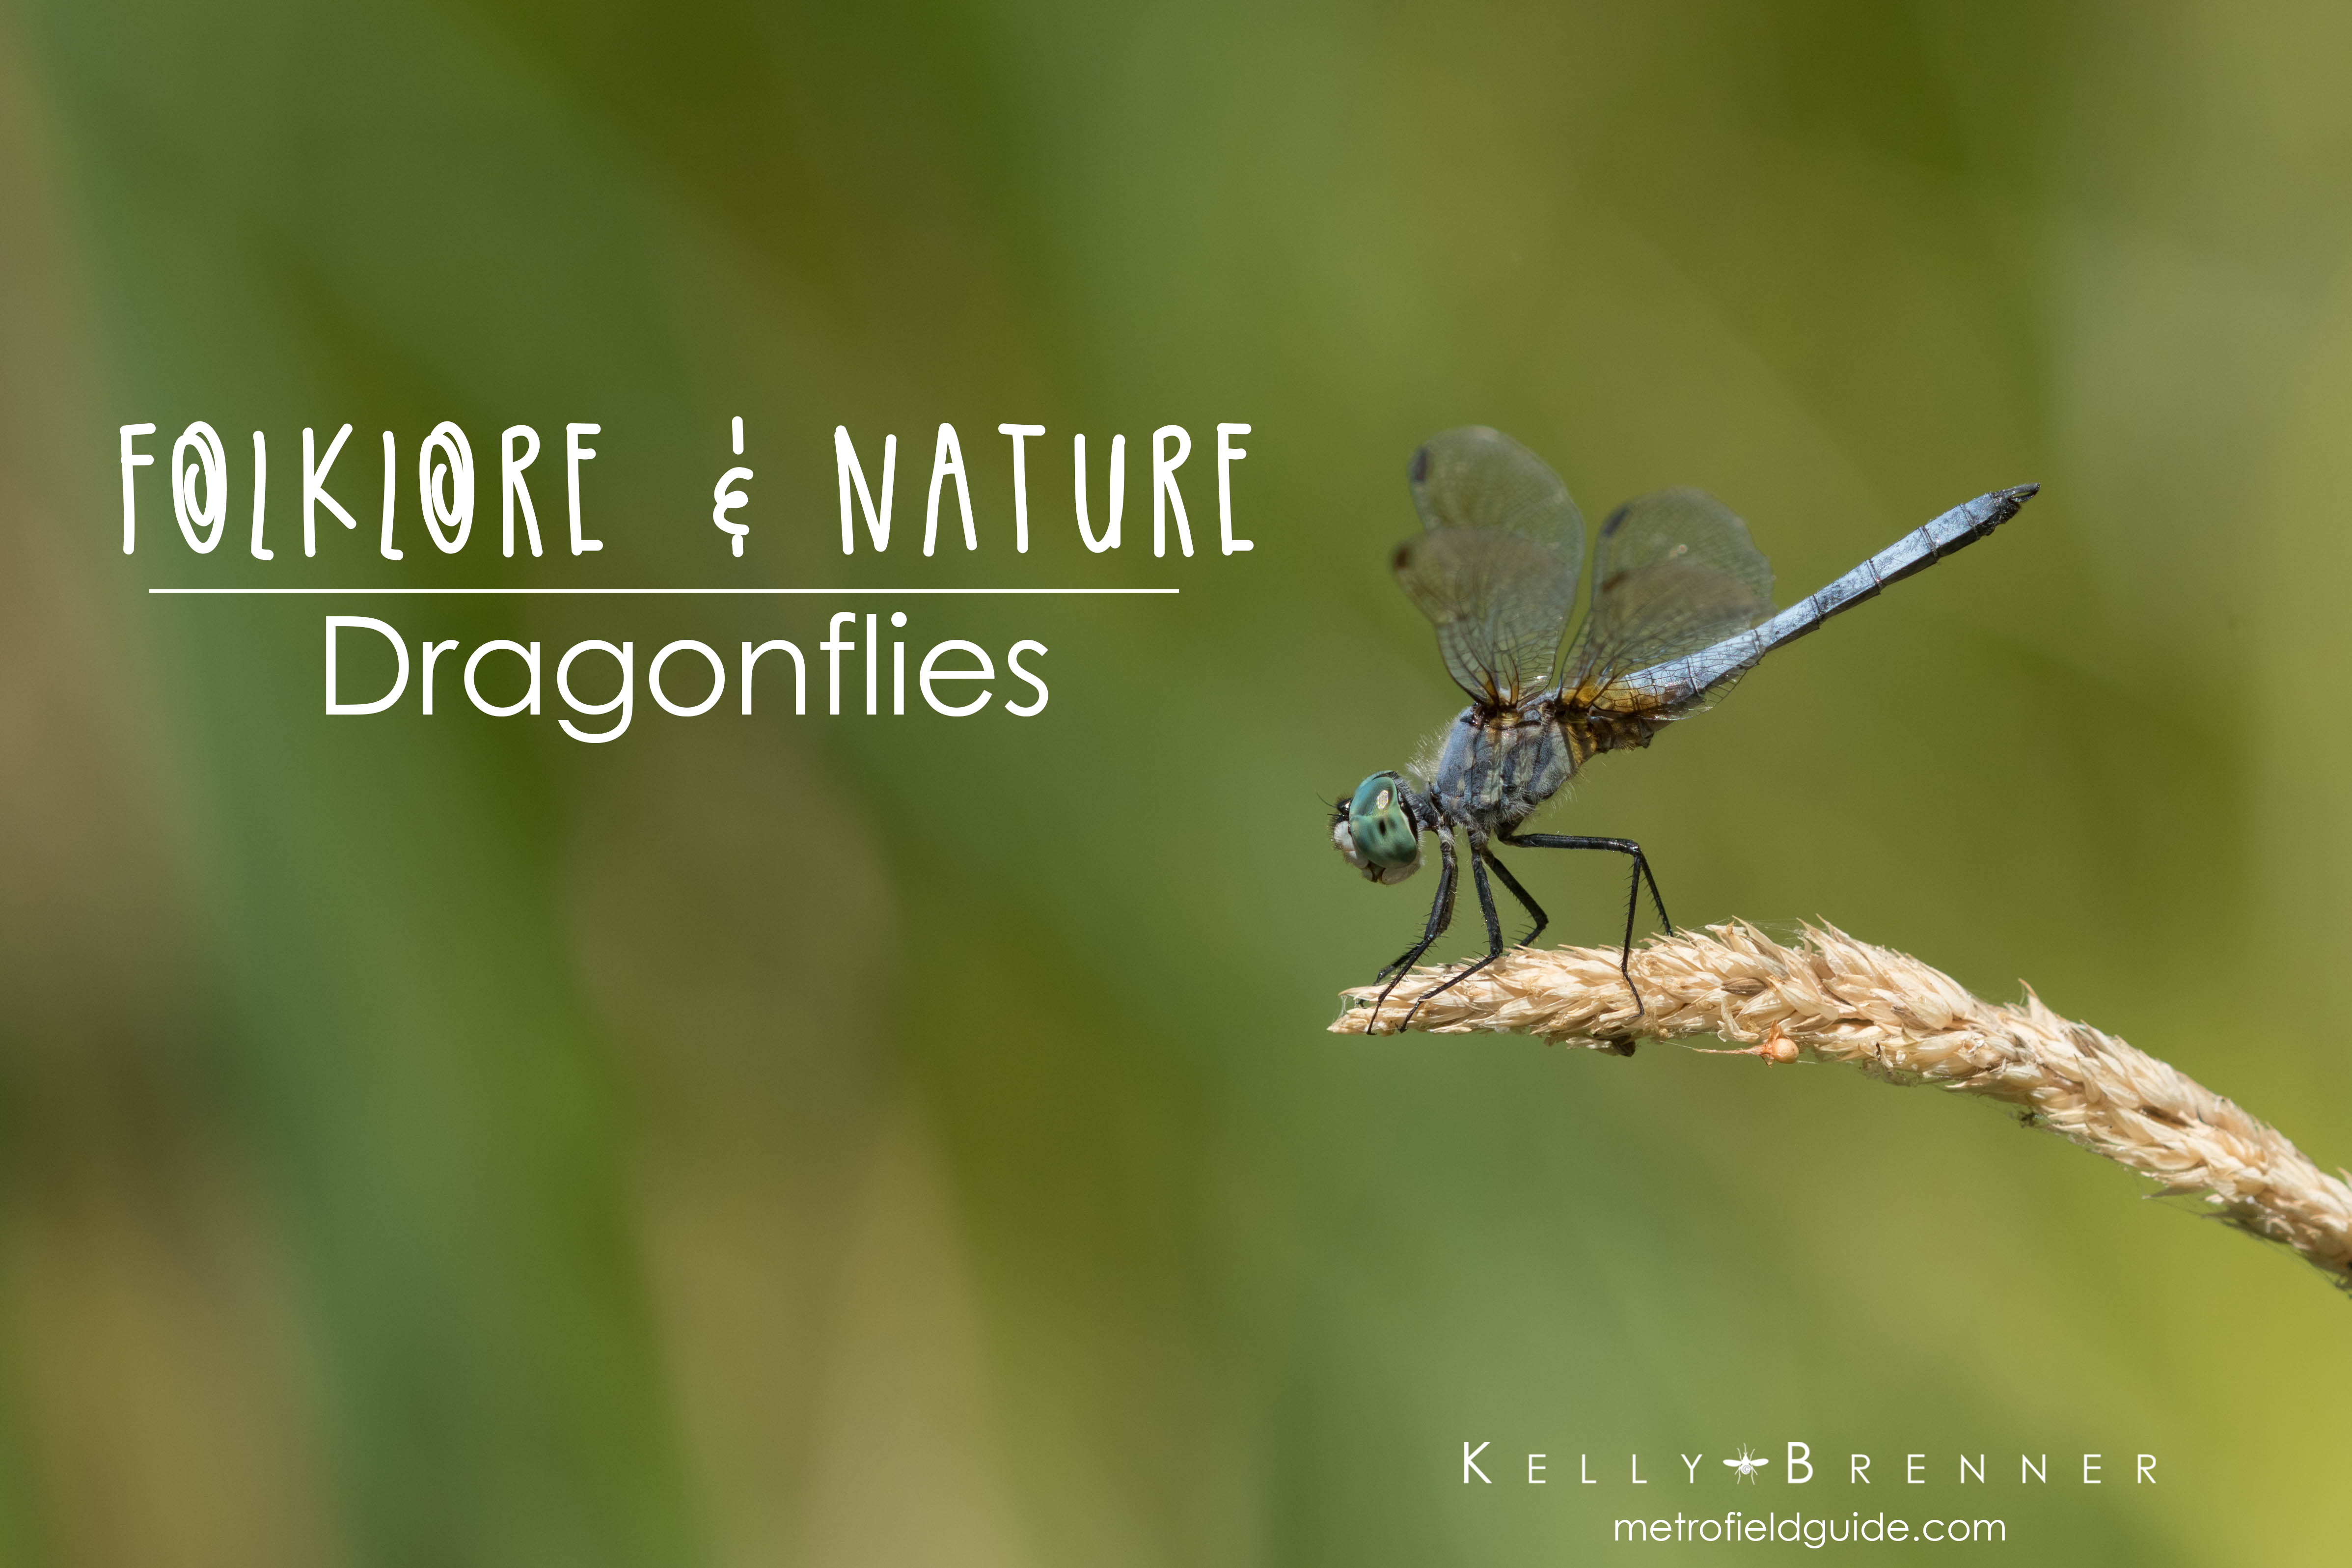 Folklore & Nature: Dragonflies